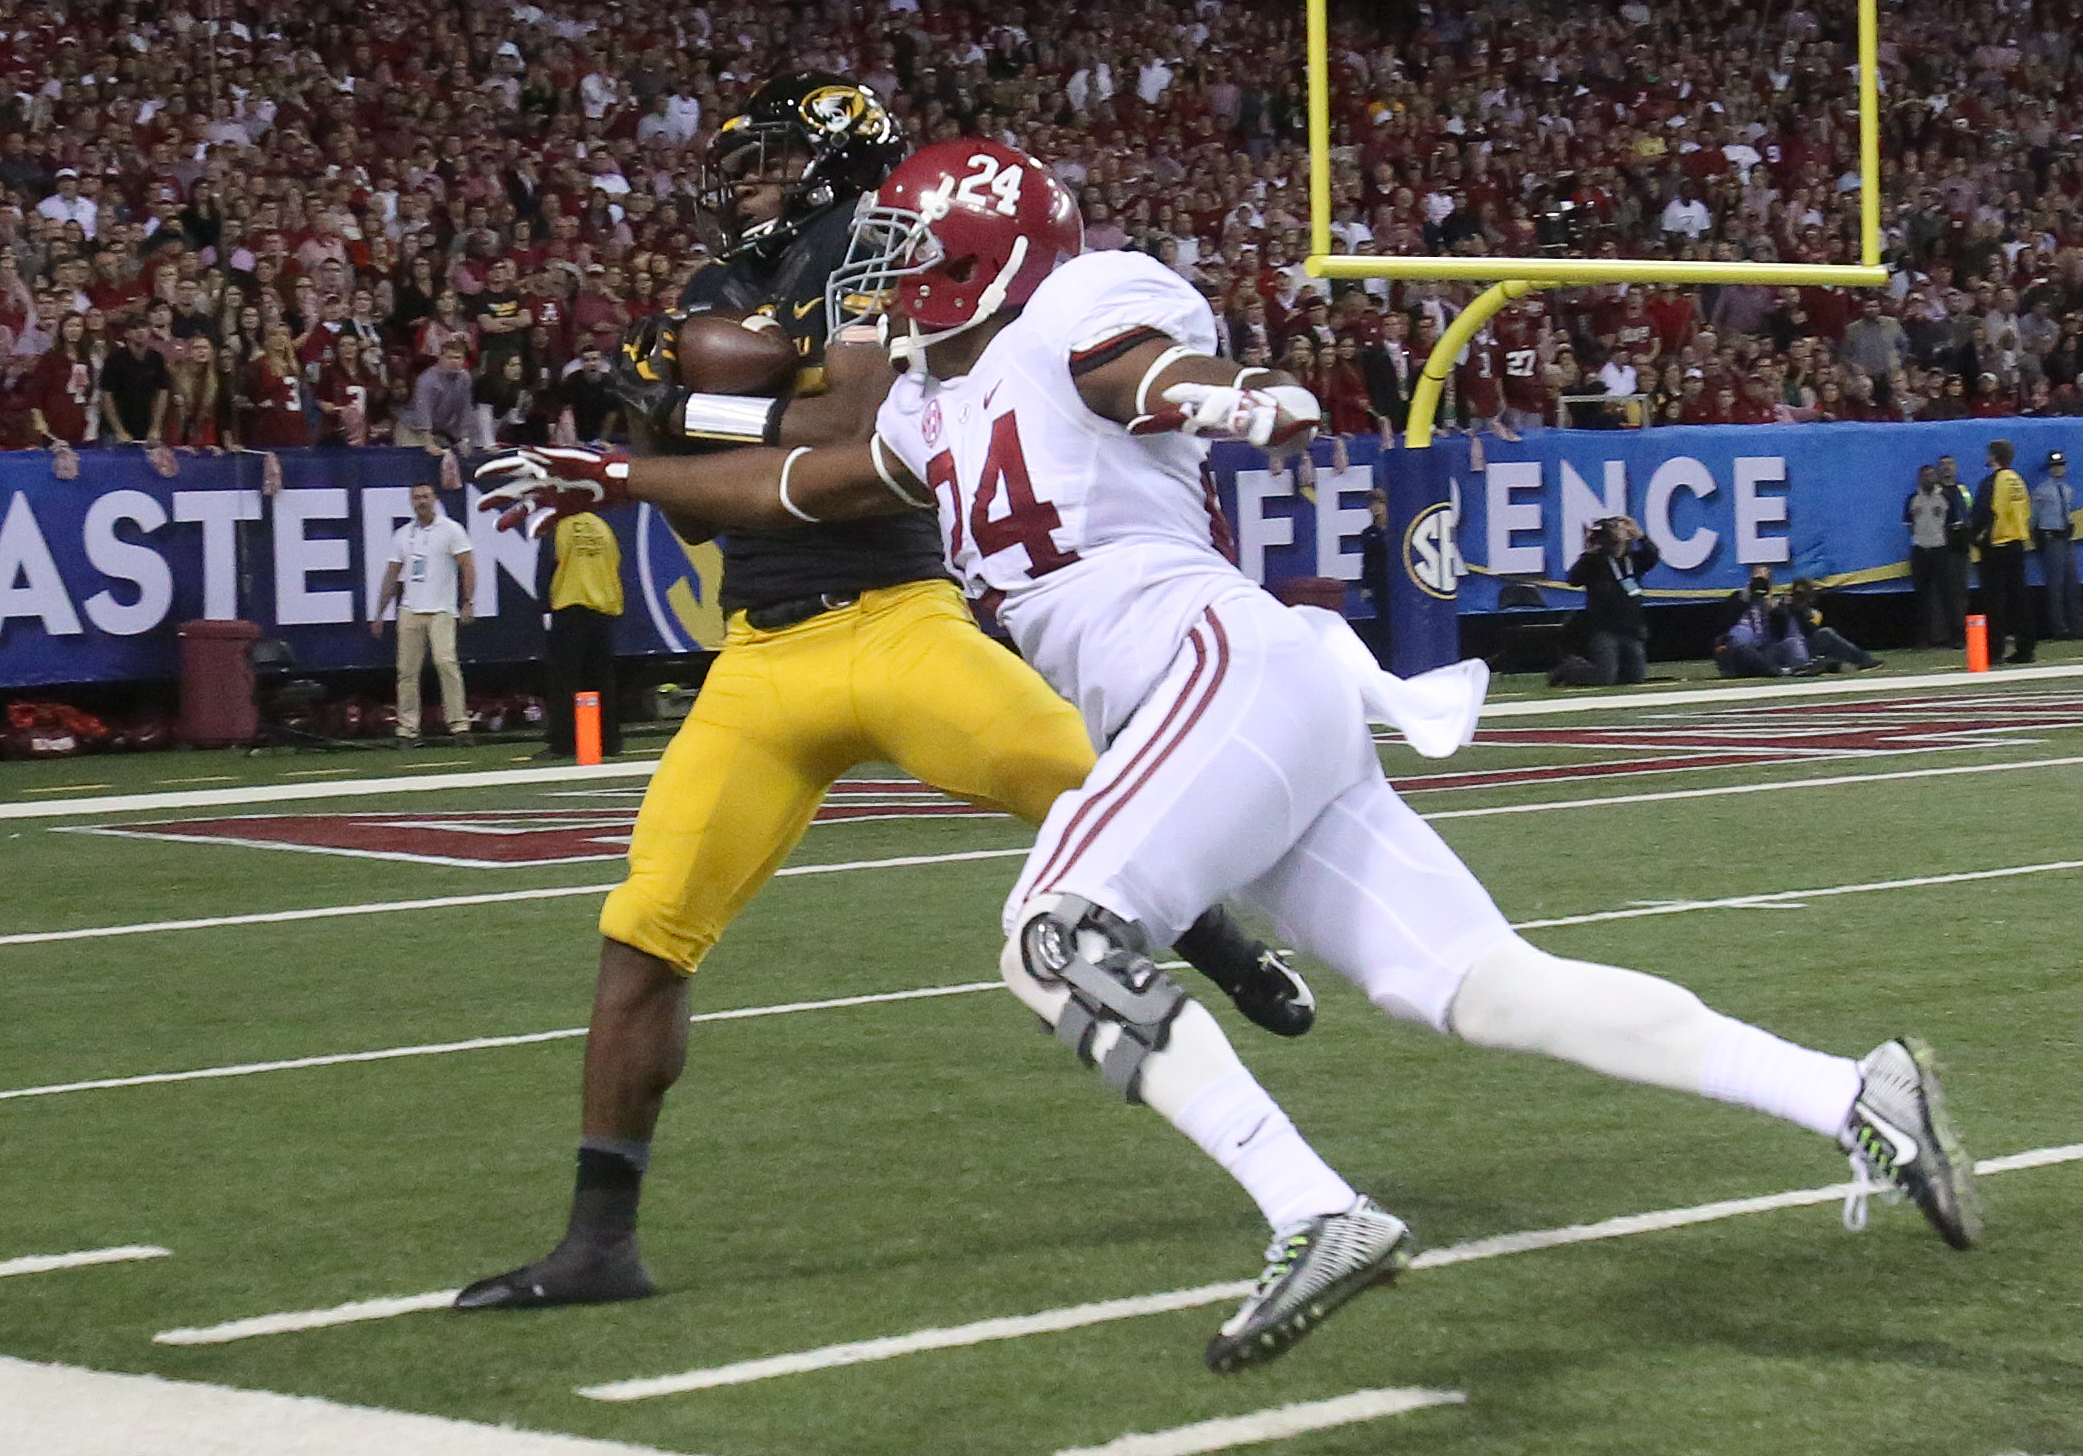 Dec 6, 2014; Atlanta, GA, USA; Missouri Tigers wide receiver Jimmie Hunt (88) catches a pass against Alabama Crimson Tide defensive back Geno Smith (24) in the third quarter of the 2014 SEC Championship at the Georgia Dome. (Jason Getz-USA TODAY Sports)